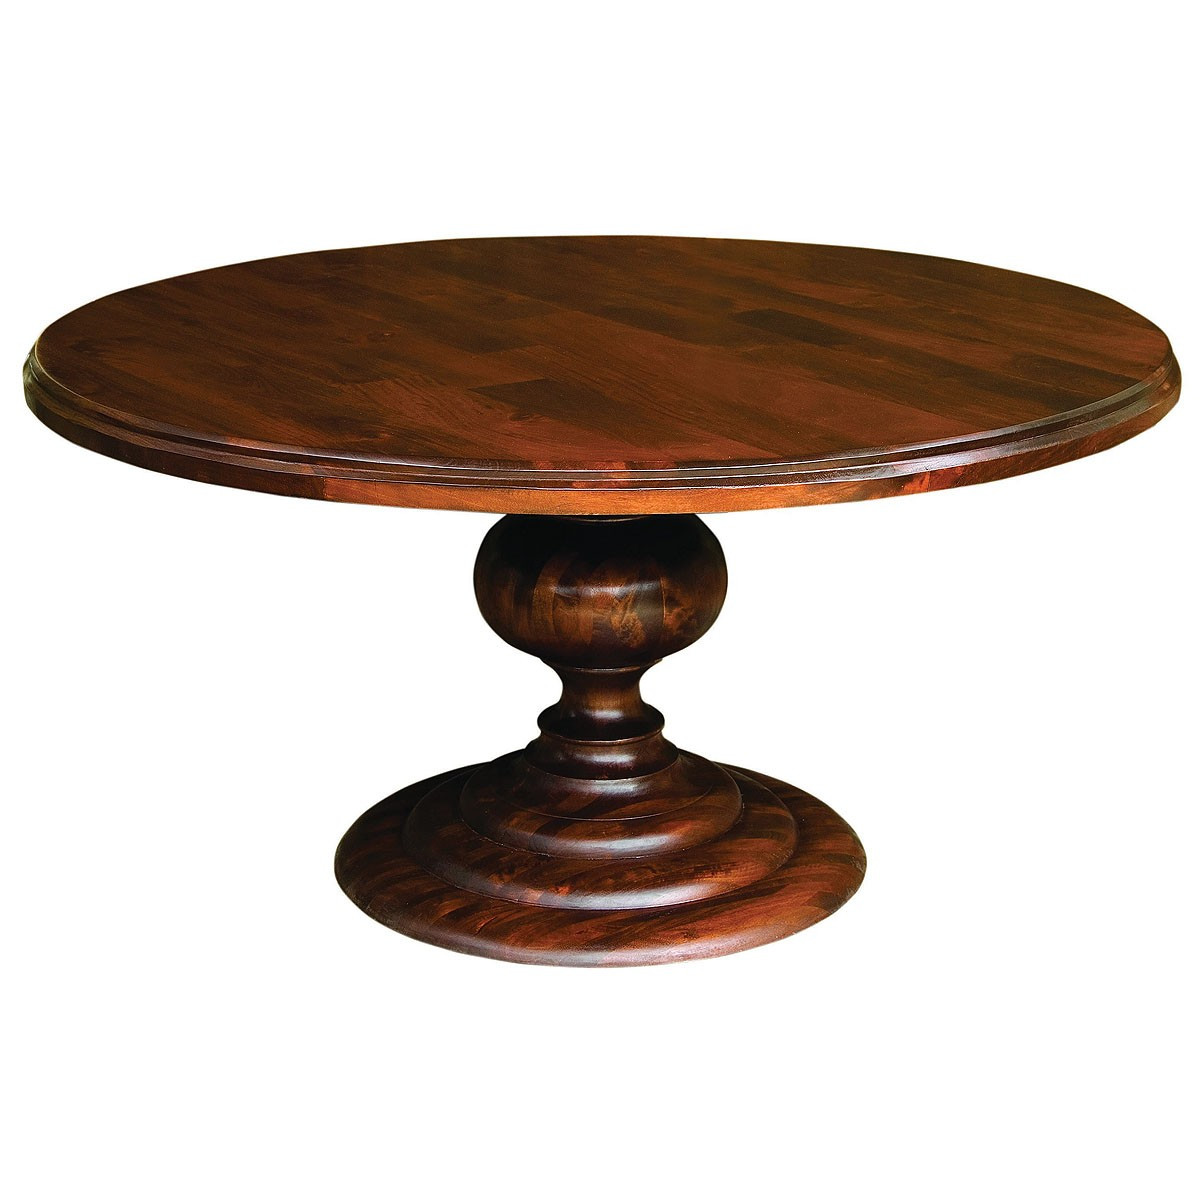 "round pedestal dining room tables | 60"" Round Pedestal Dining Table-Cocoa 